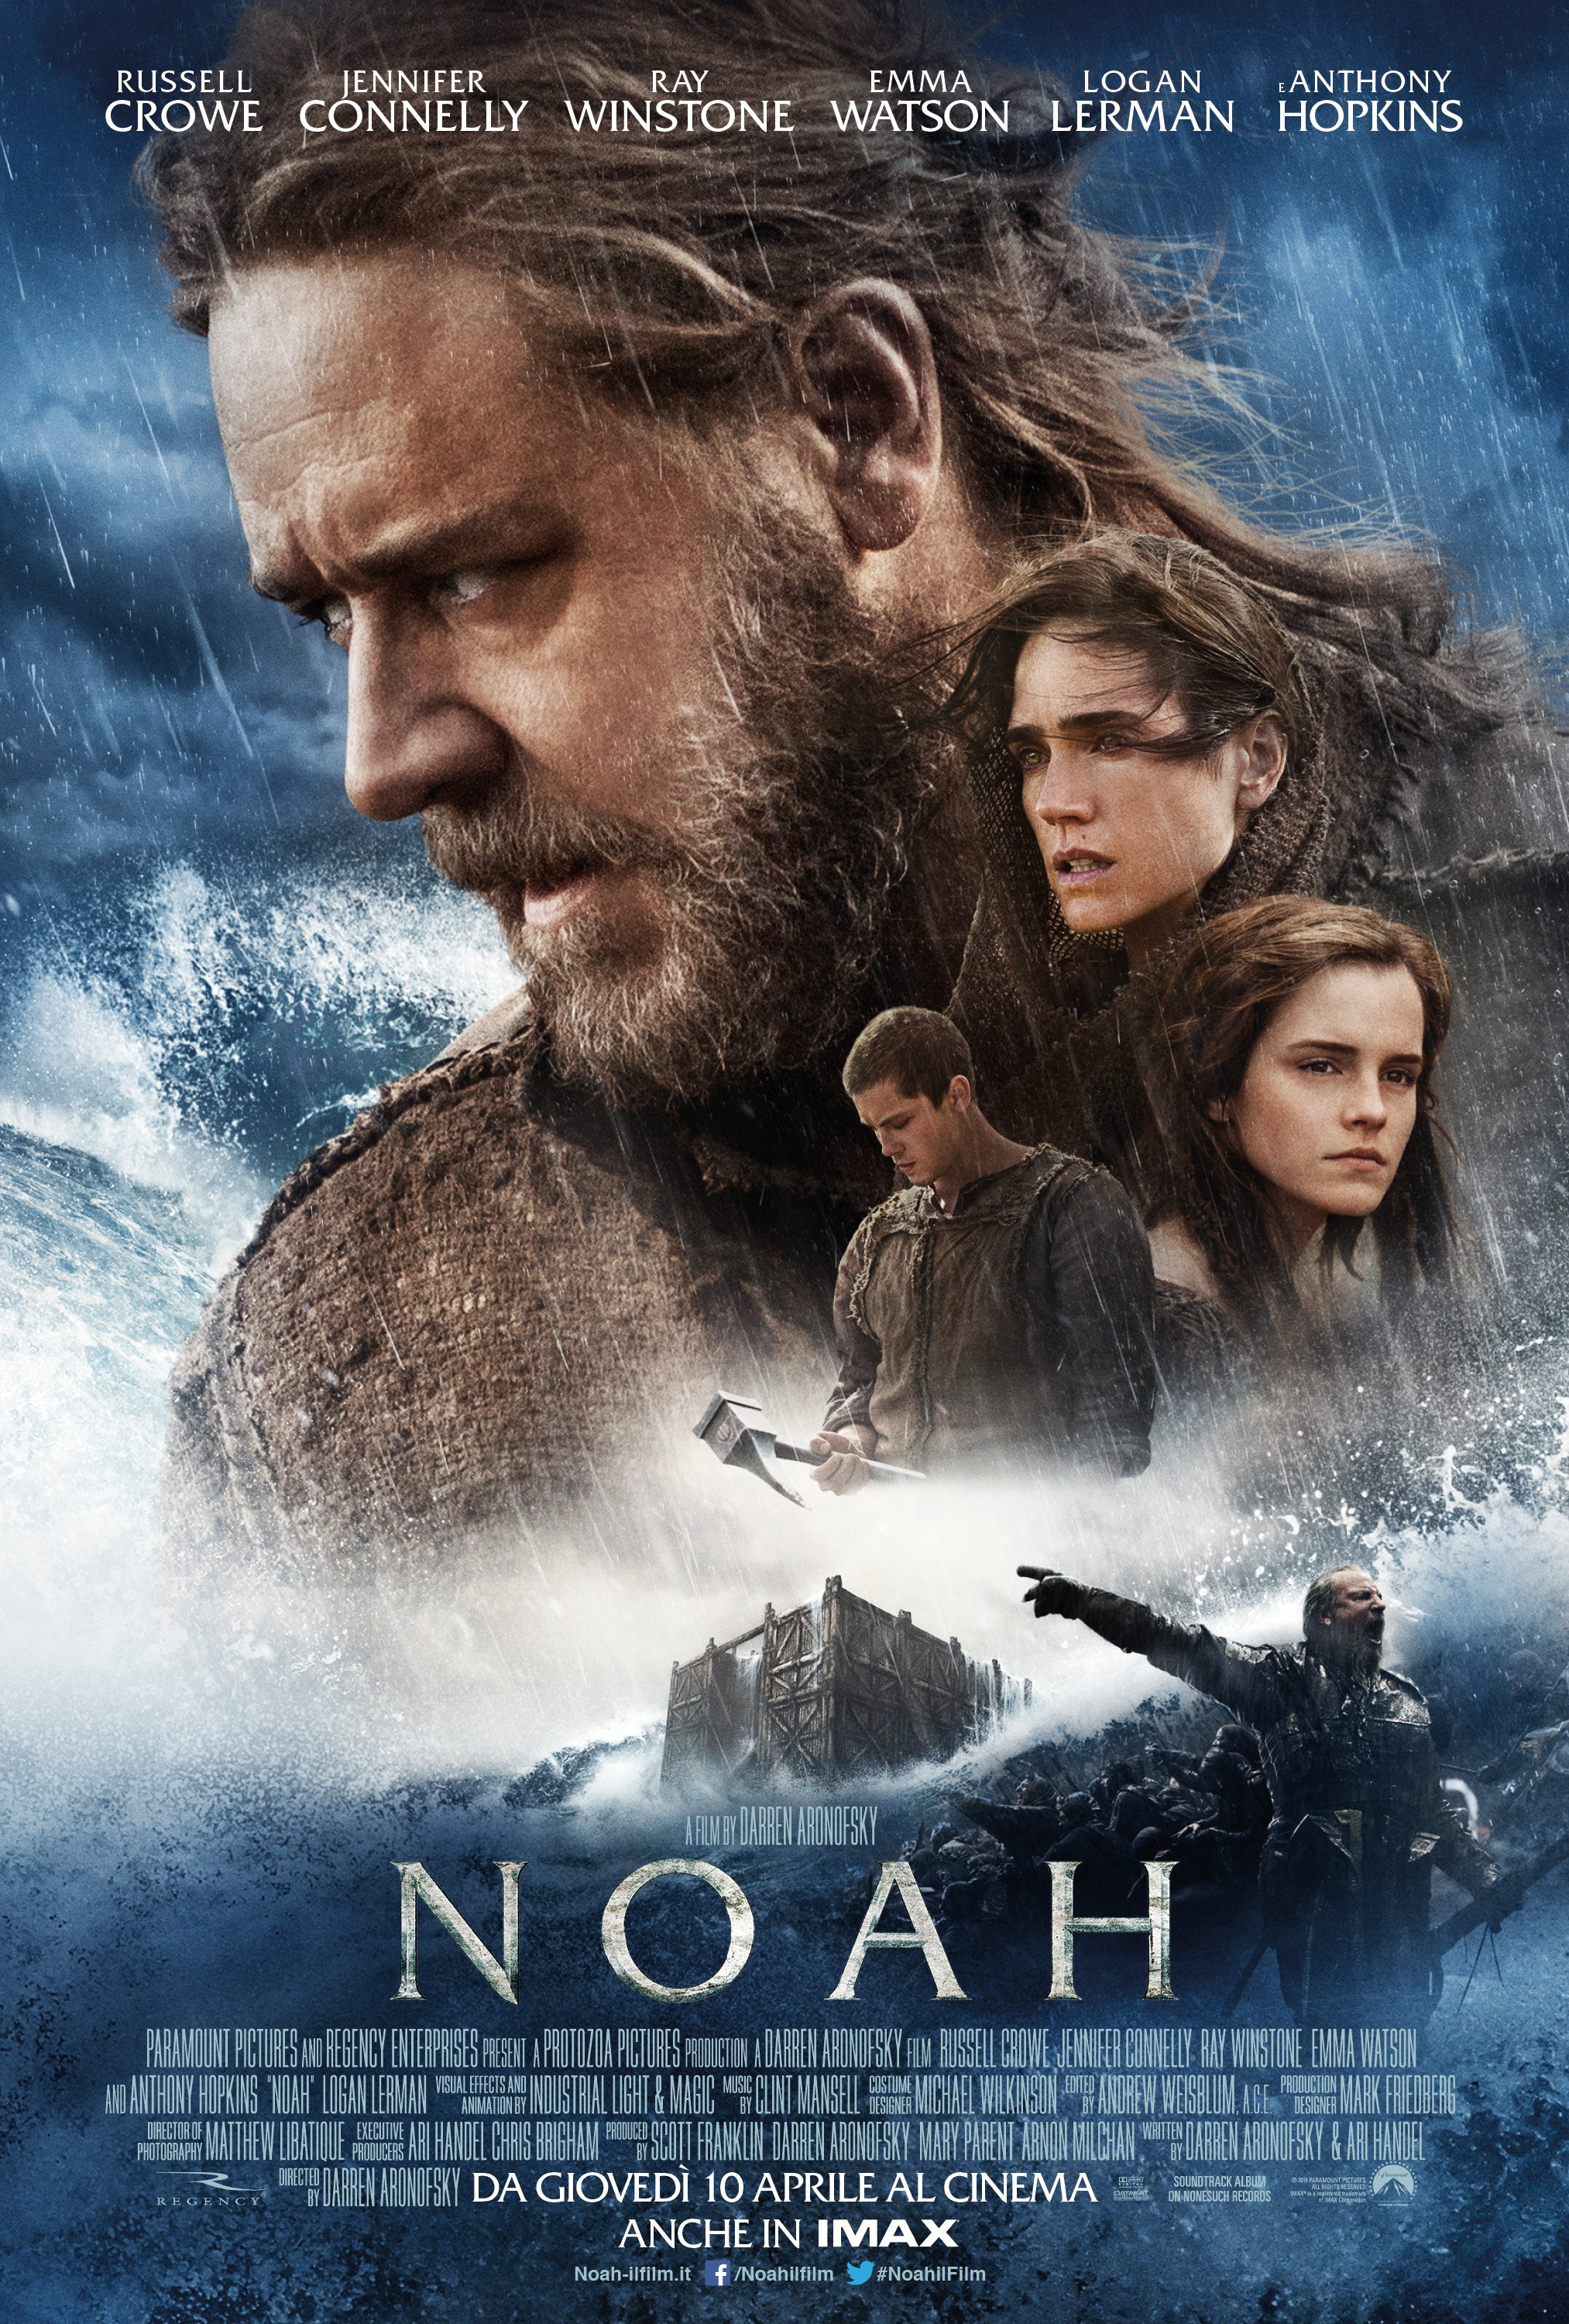 NOAH - Music by Clint MansellAssistant Music Editing by Jessica Weiss